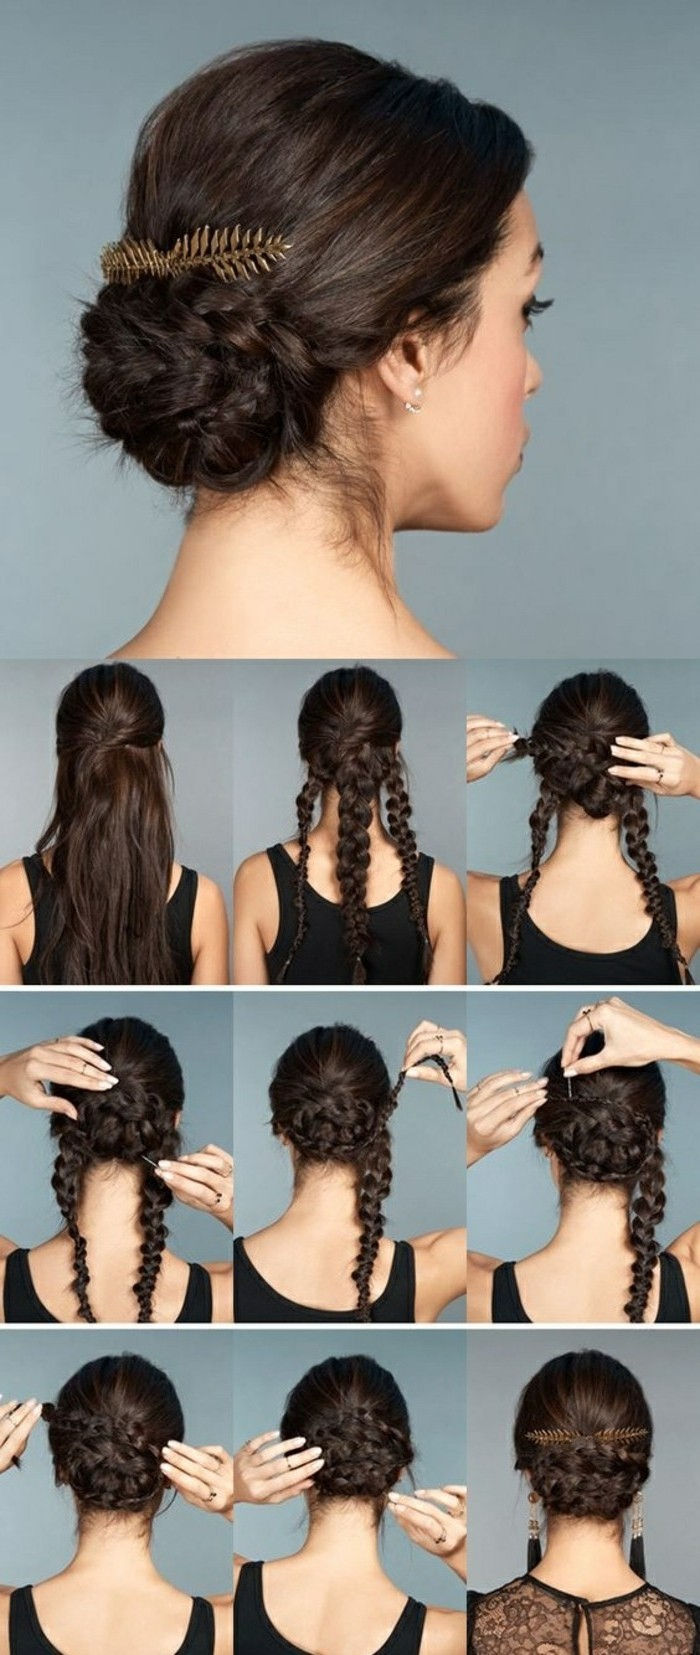 facile-squatting spina acconciature-scuro marrone-capelli-trecce-te-make-accessorio